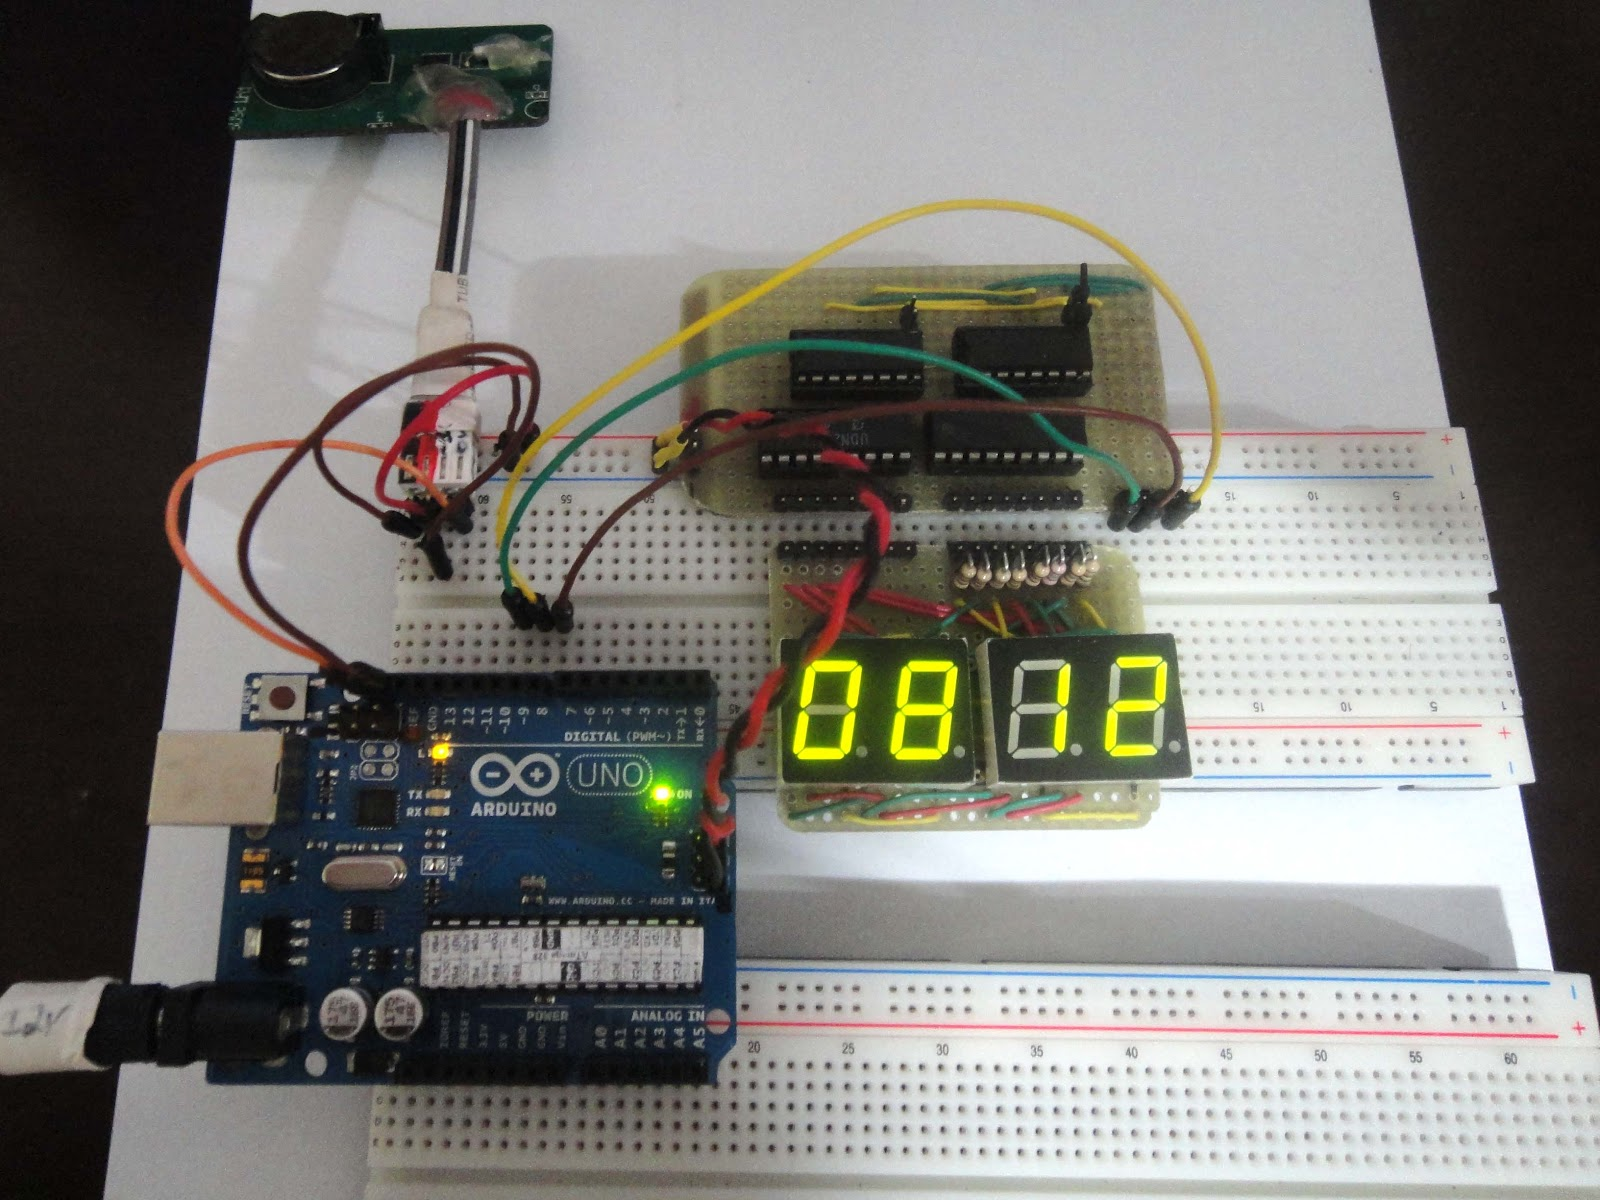 Electronics For Bharat Updated Bread Board Tips And Tricks Basic Circuit Breadboard Hacks Mods Circuitry Breakout Arduino In Use